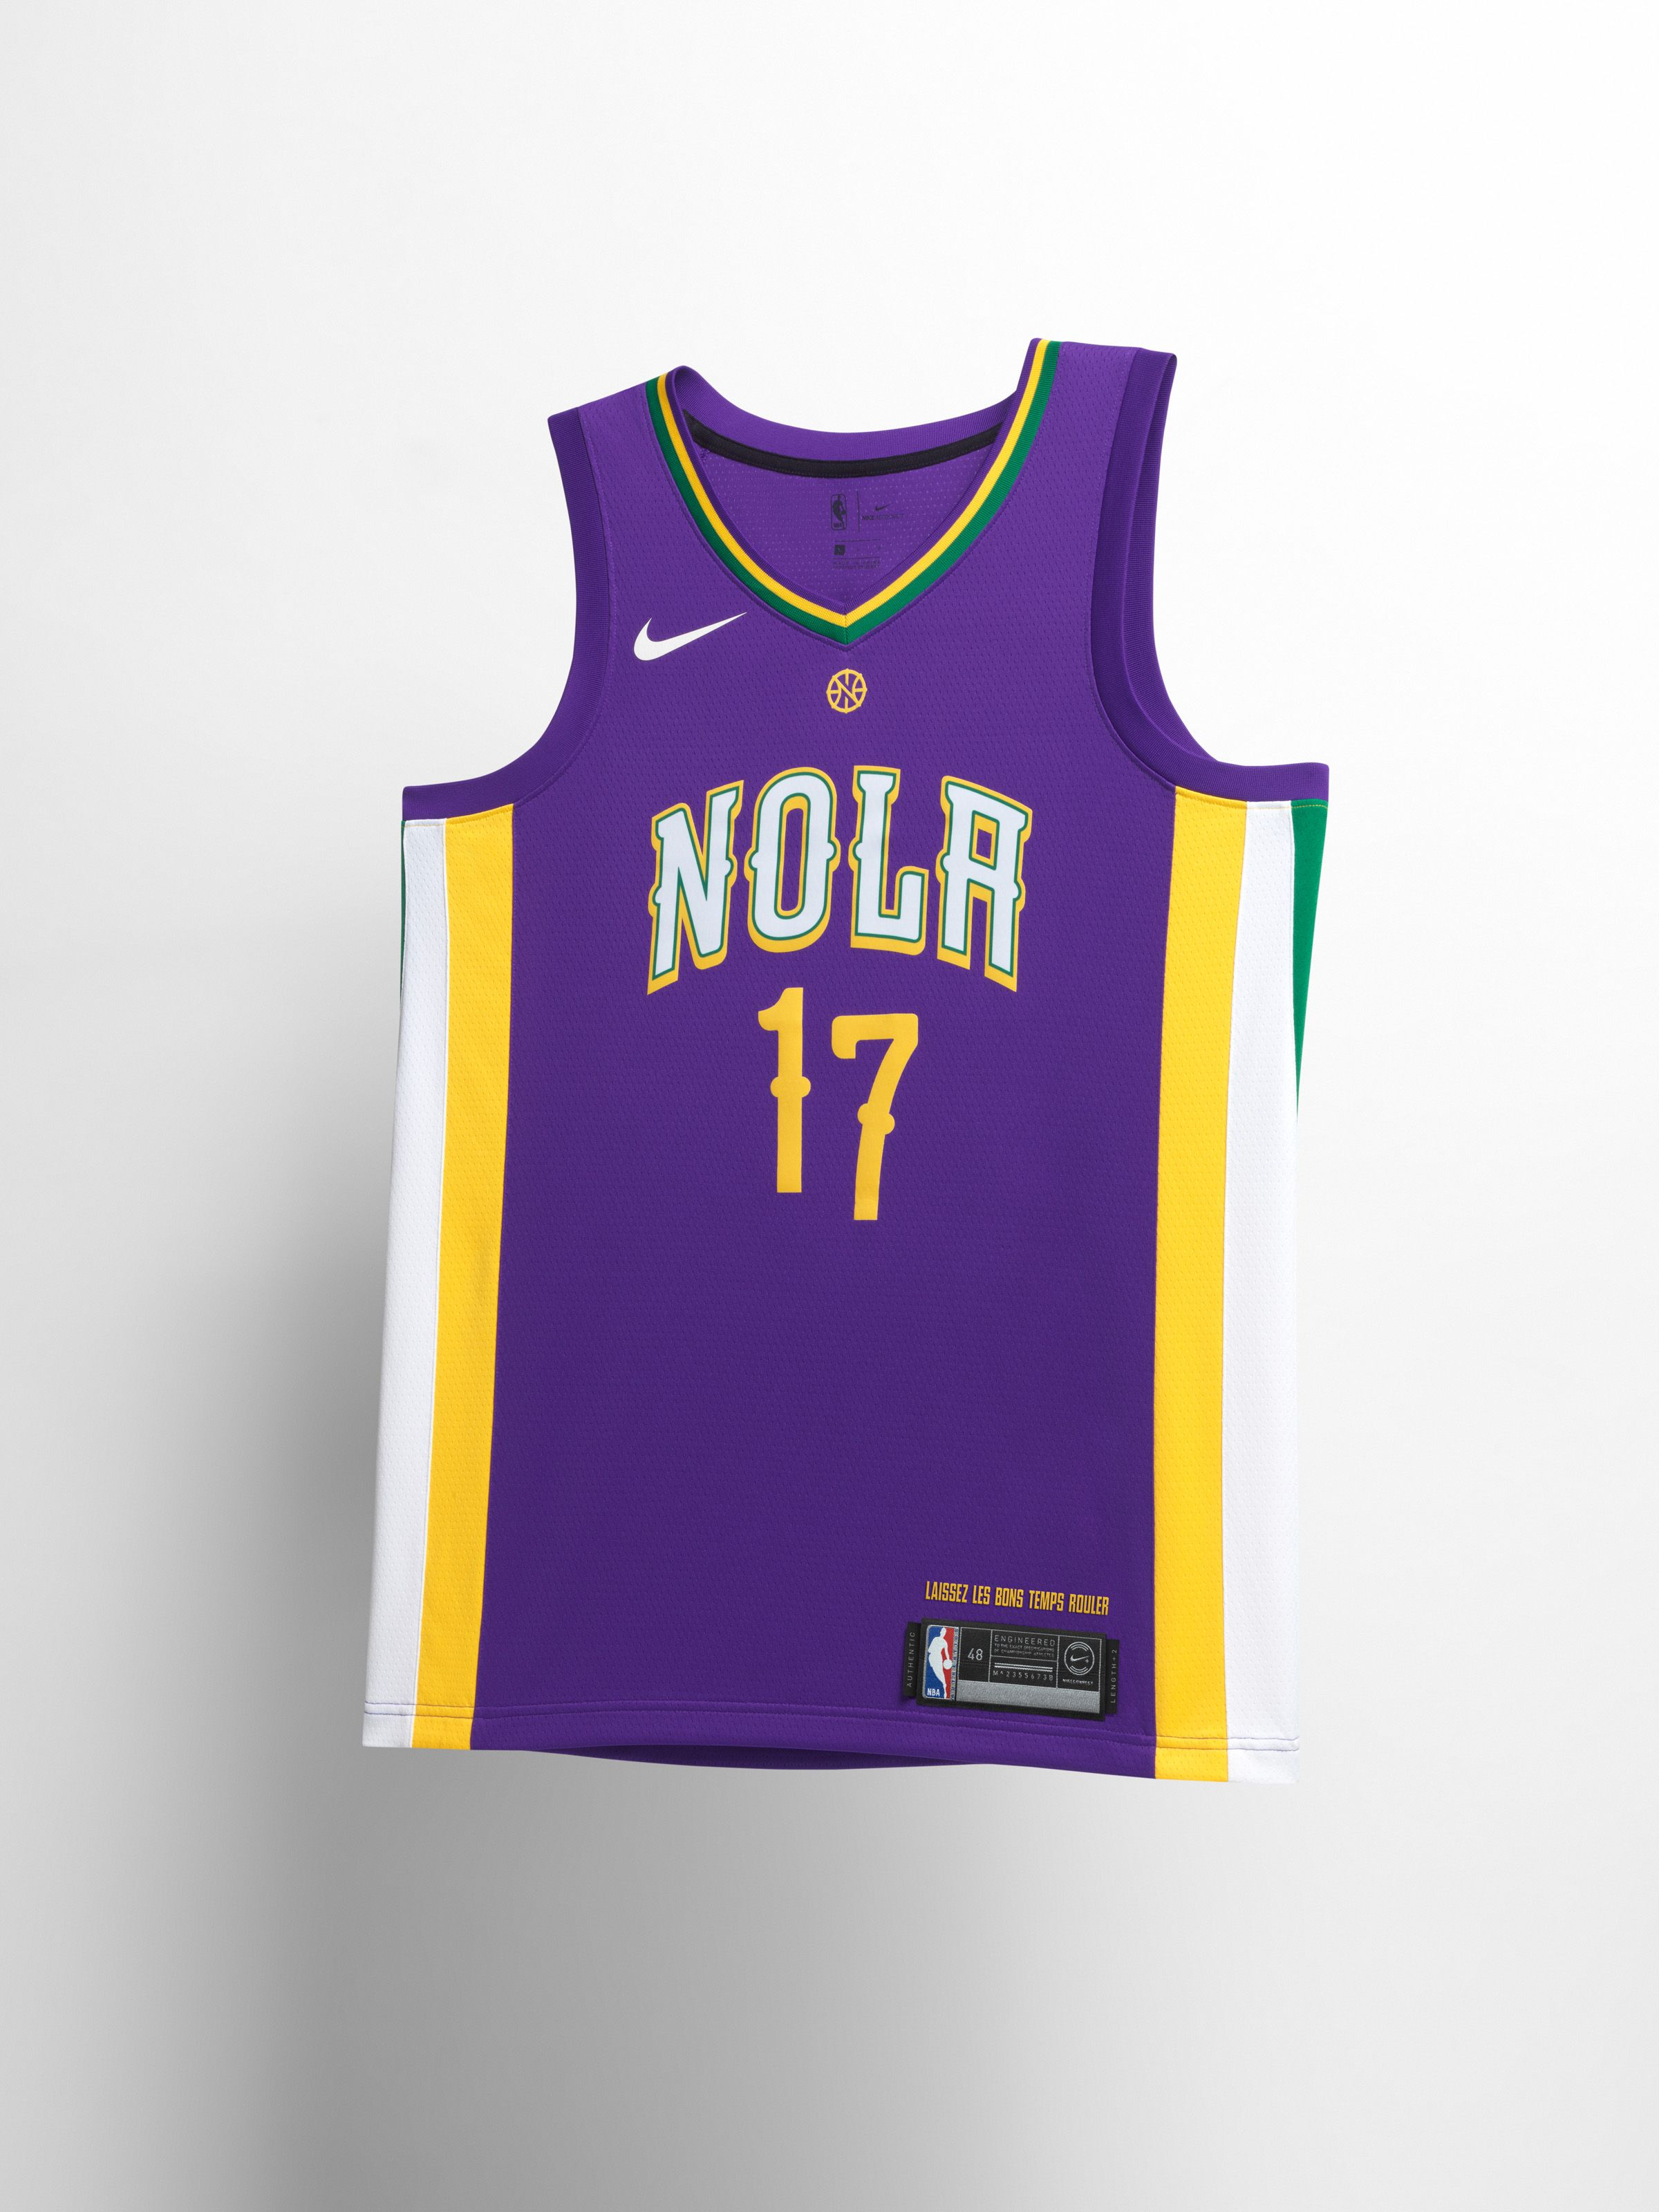 1f4a2370f21 New Orleans Pelicans Sports Uniforms